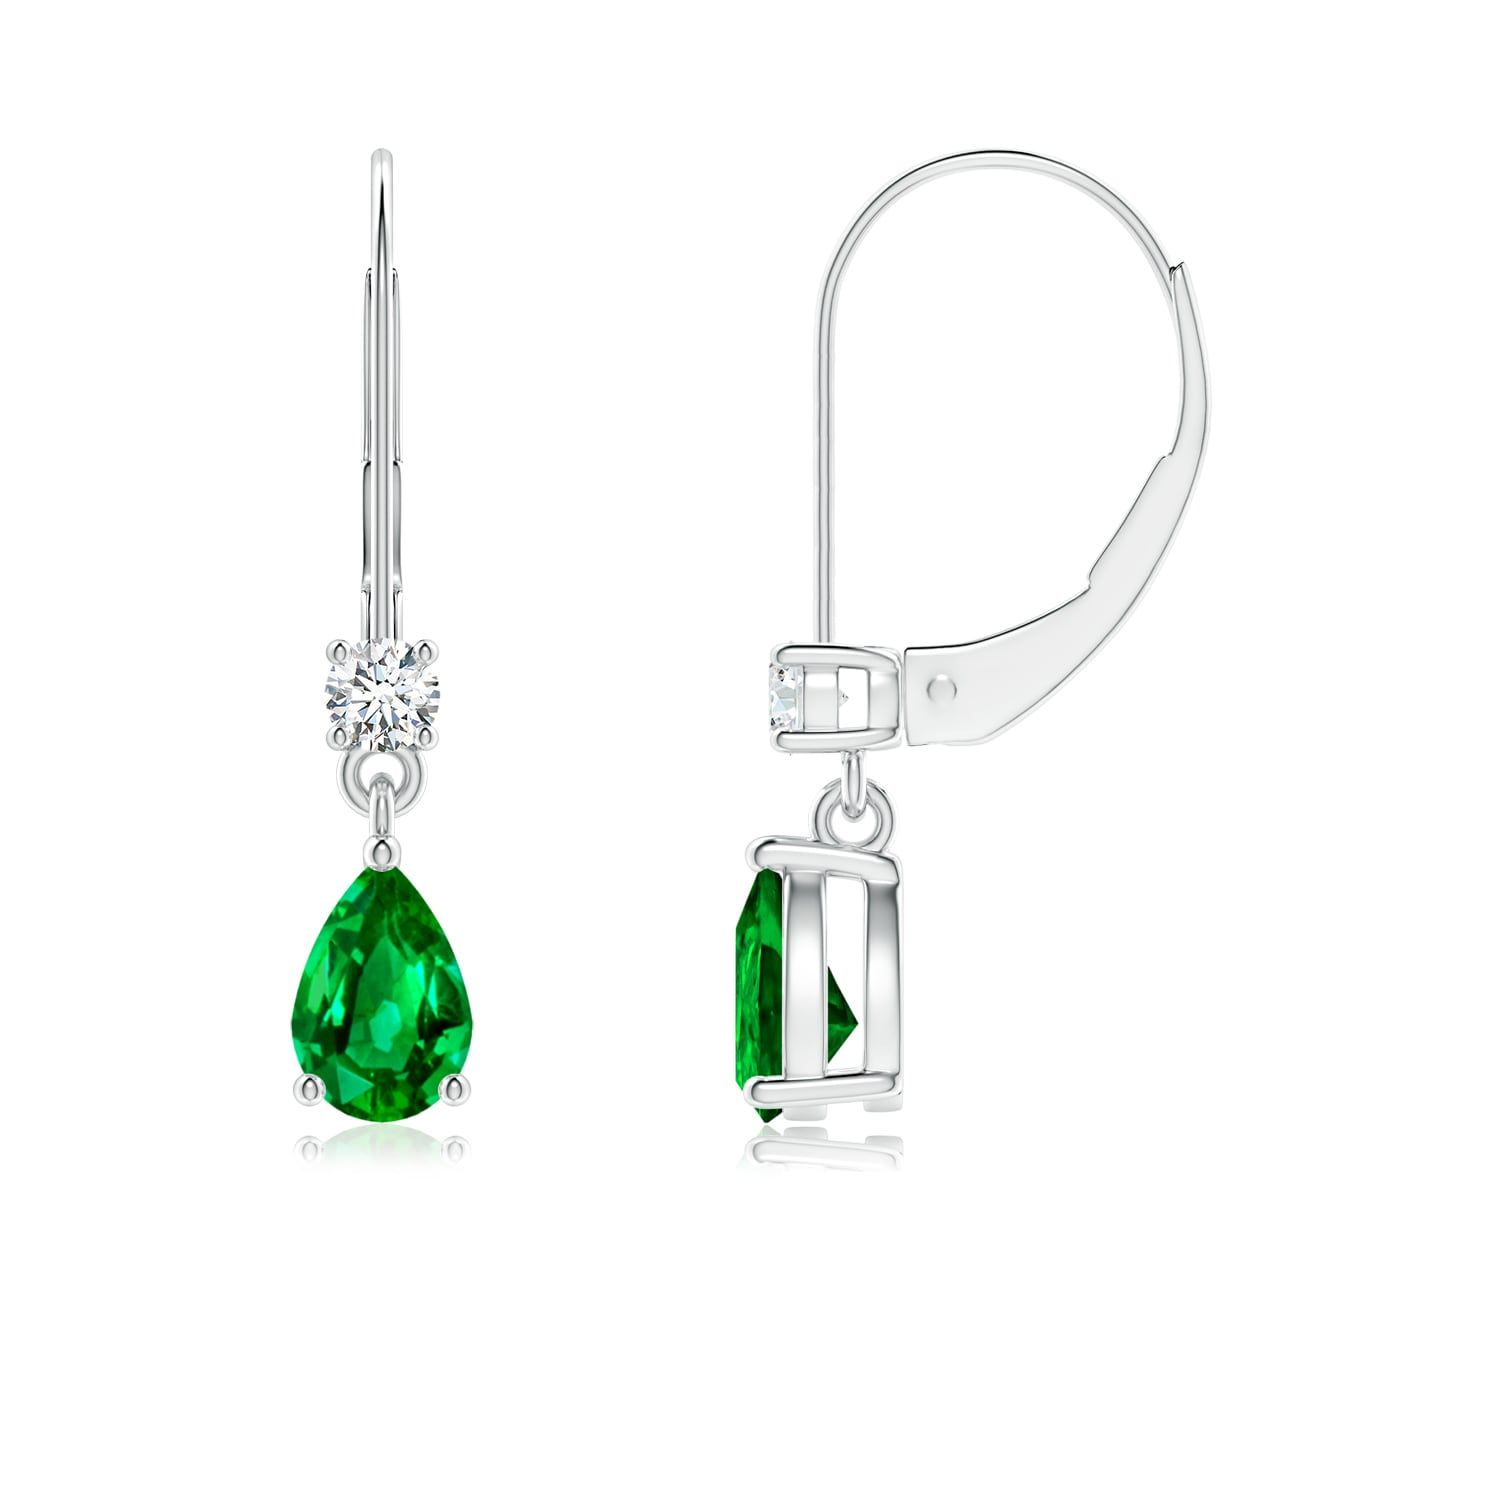 51cab43997cb4 Pear Emerald Leverback Drop Earrings with Diamond in 2019 | EARRINGS ...